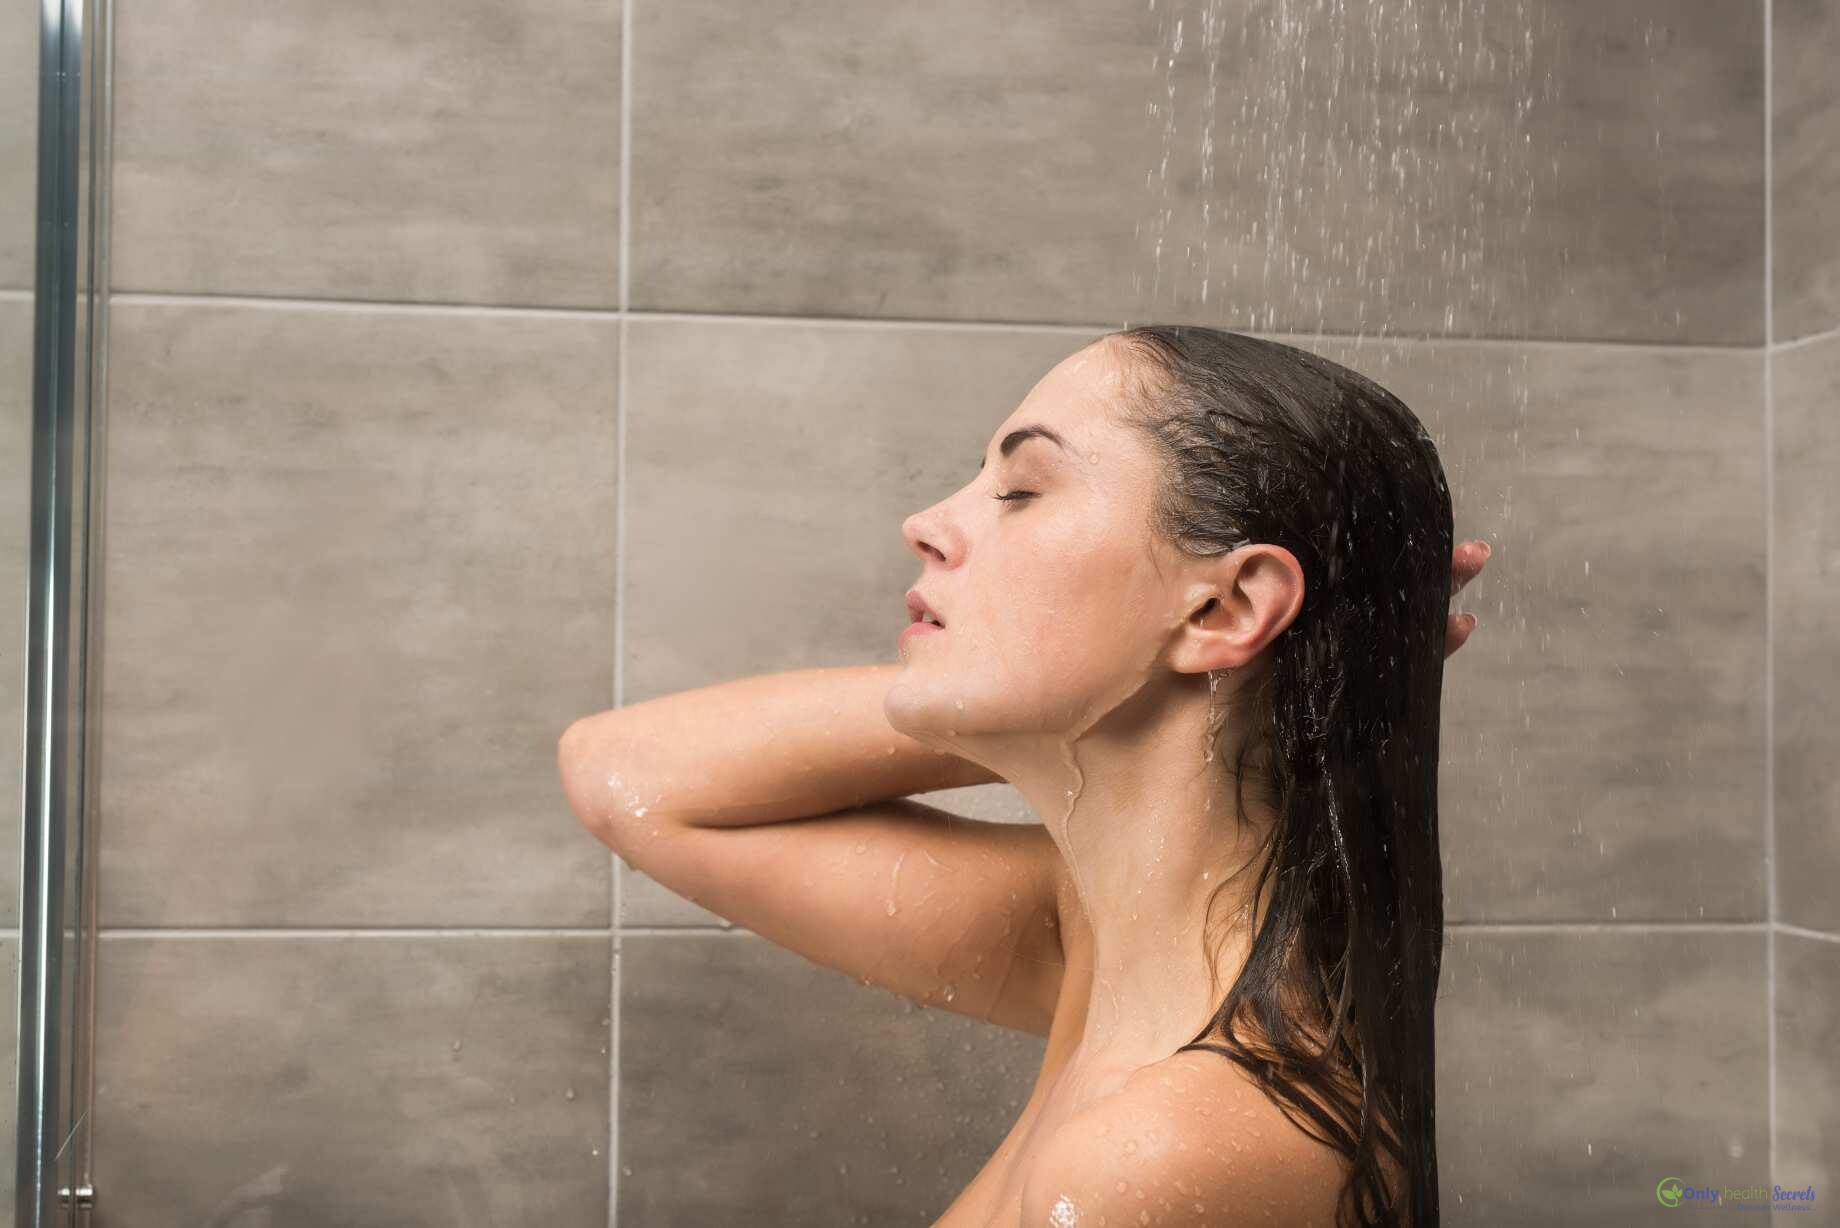 side-view-of-attractive-woman-taking-shower-XHDUL64_compress83